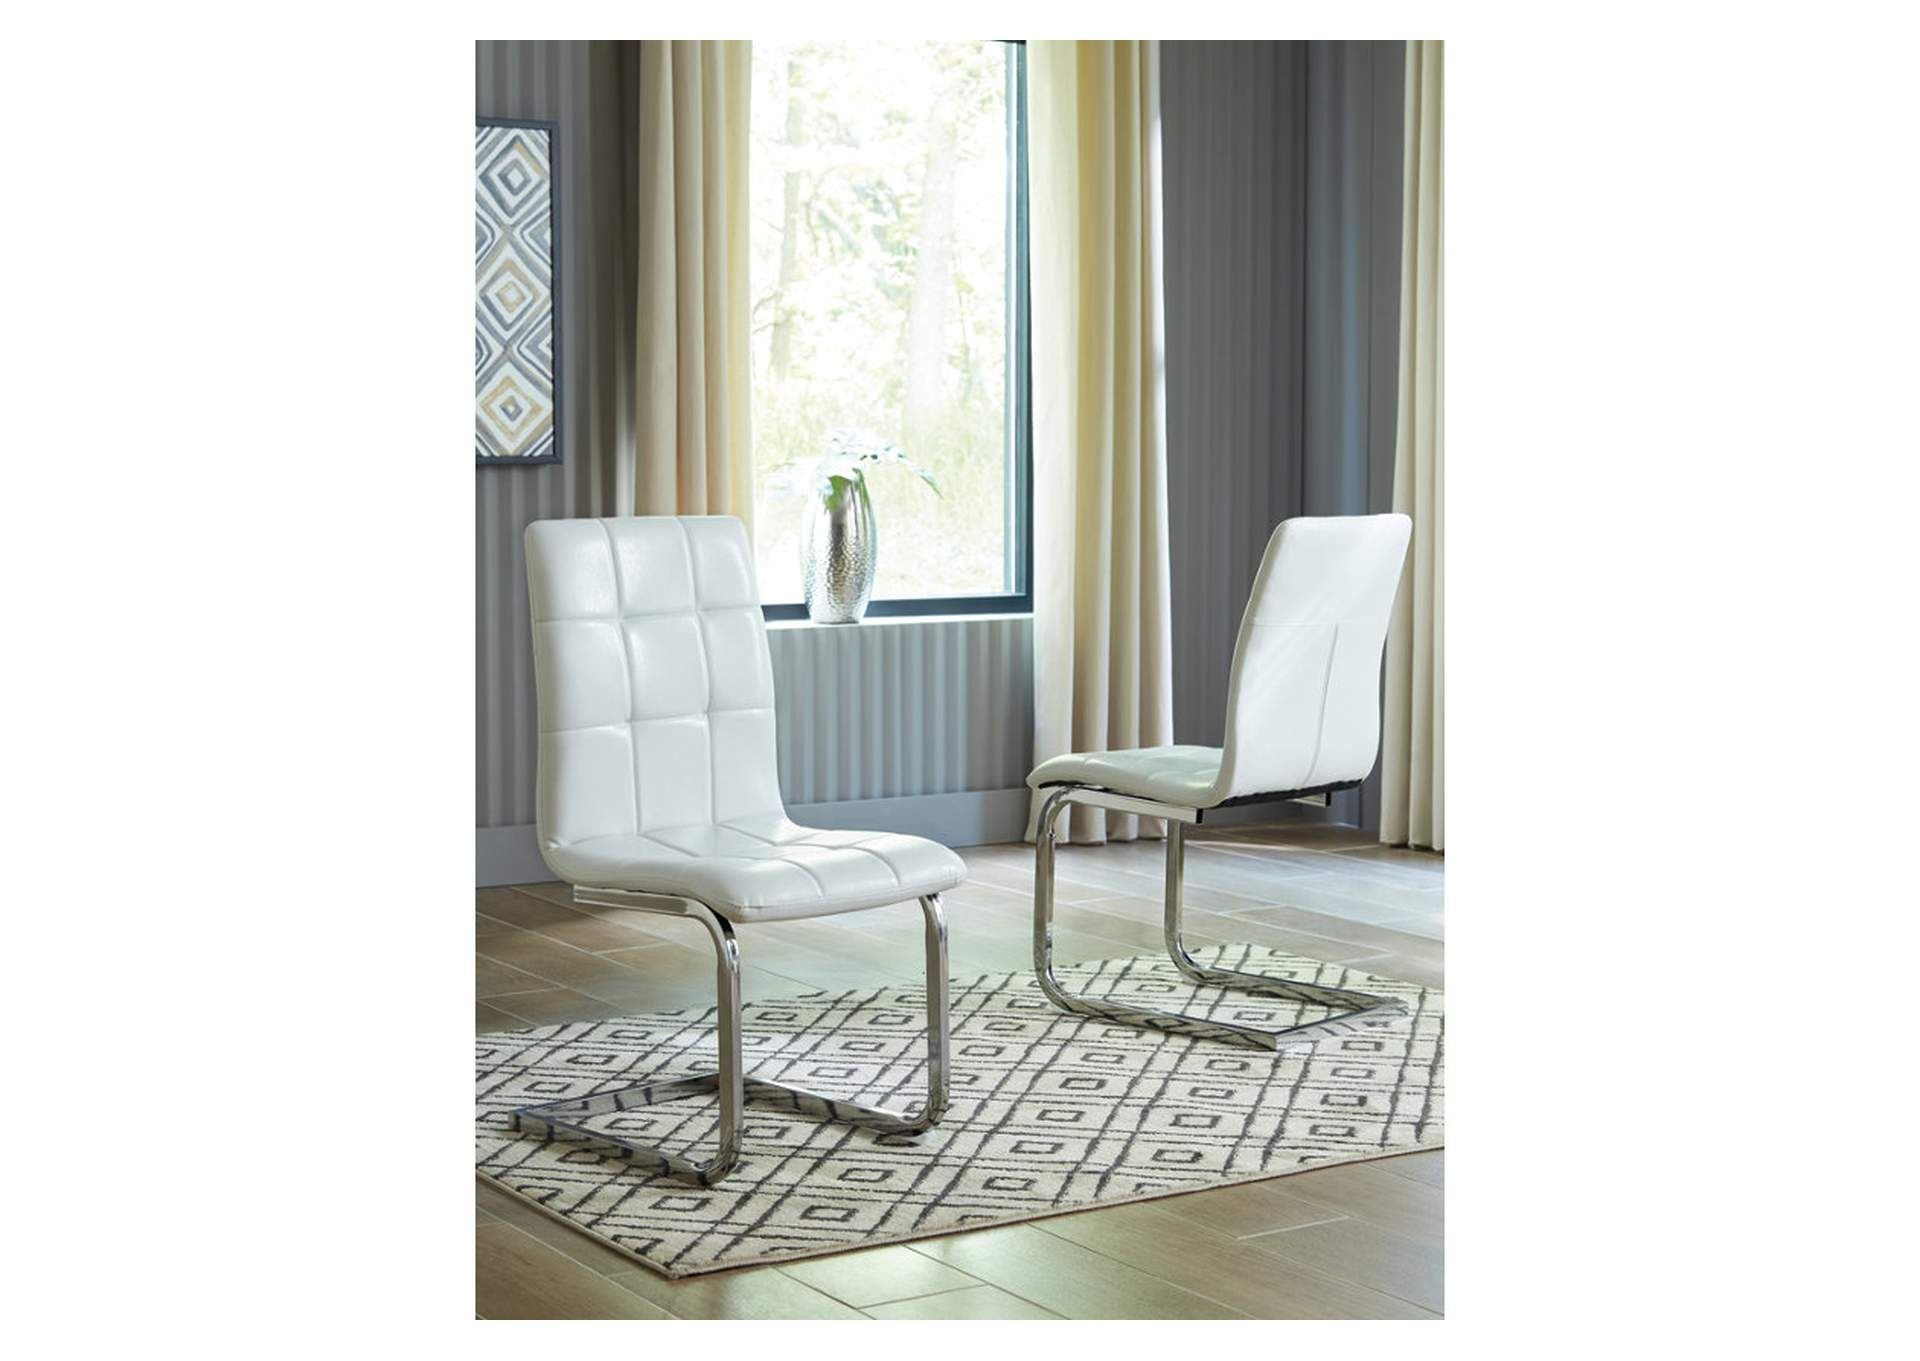 Madanere White/Chrome Finish Dining Chairs (4 Piece),Signature Design By Ashley